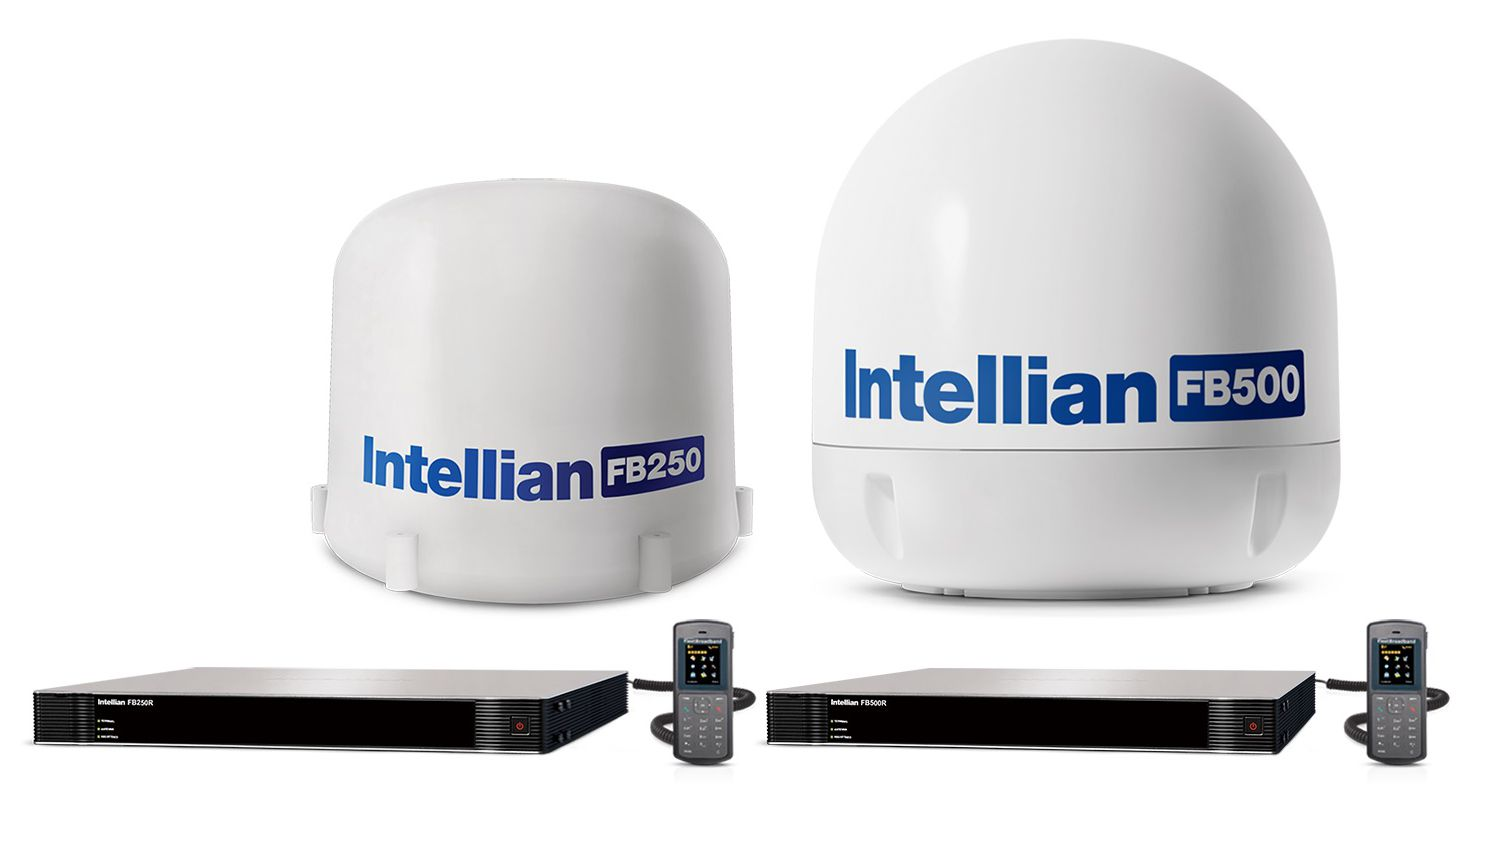 Intellian products